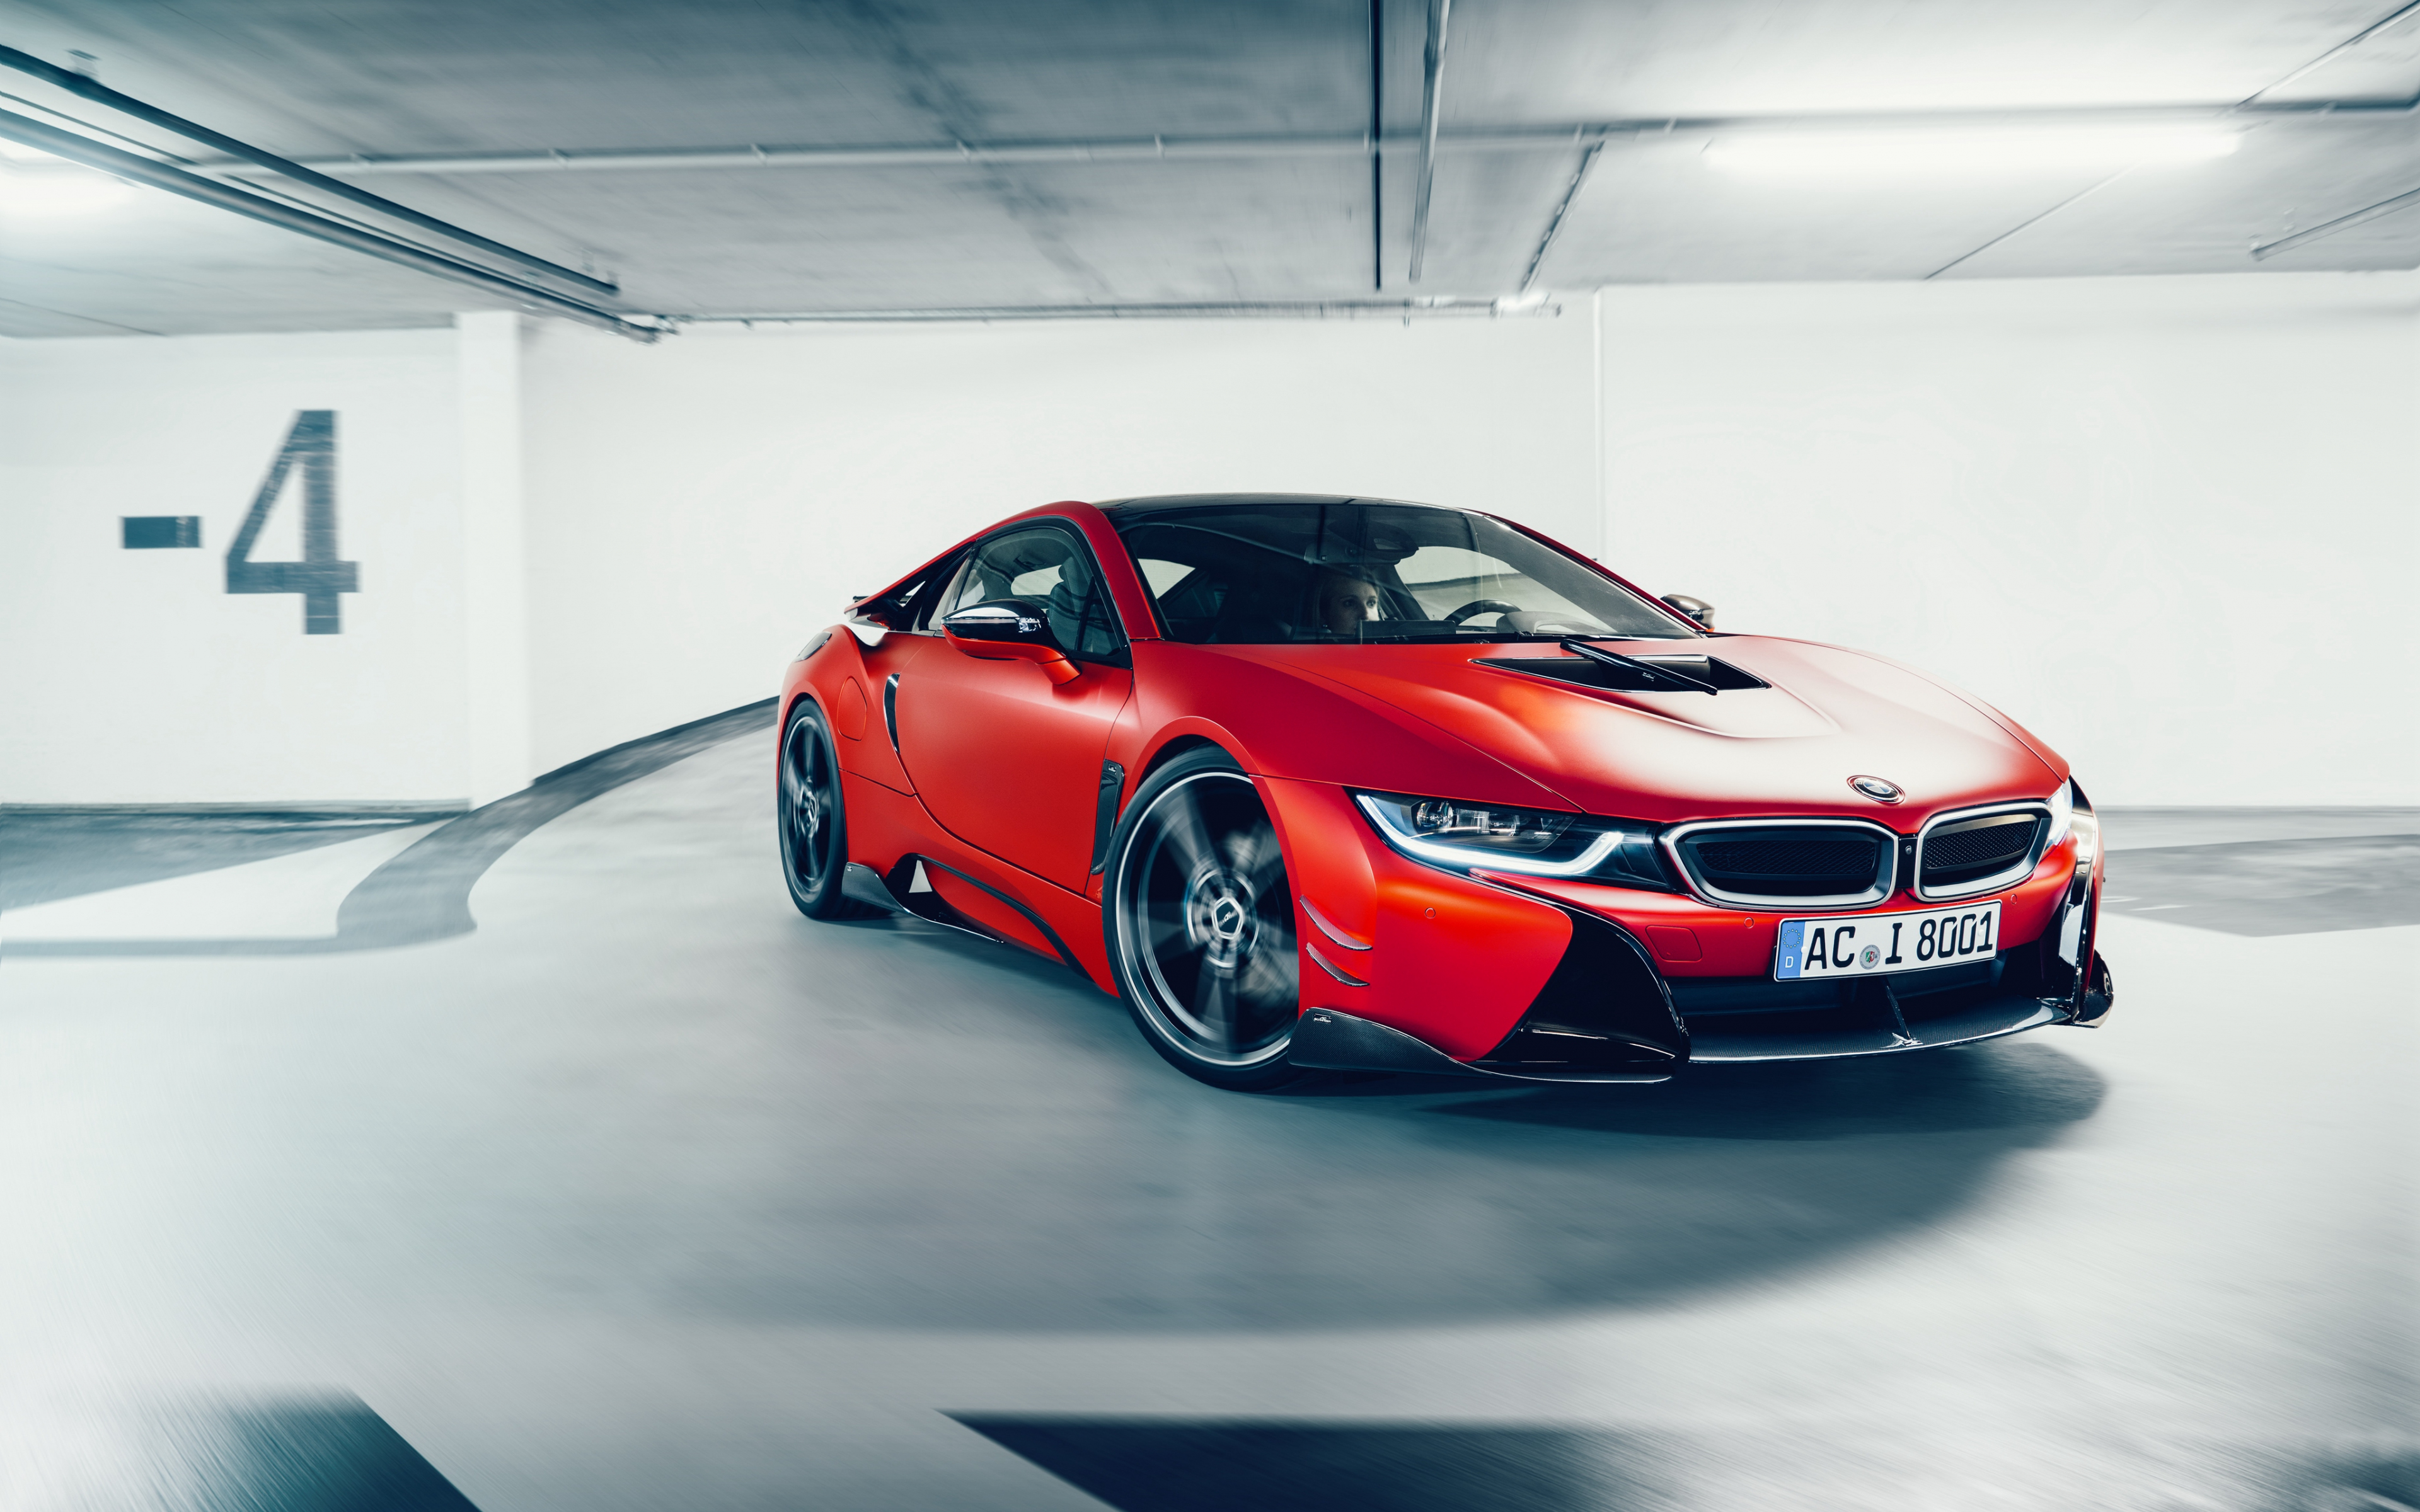 Desktop Wallpaper Bmw I8 Luxury Red Sports Car Hd Image Picture Background E46d58